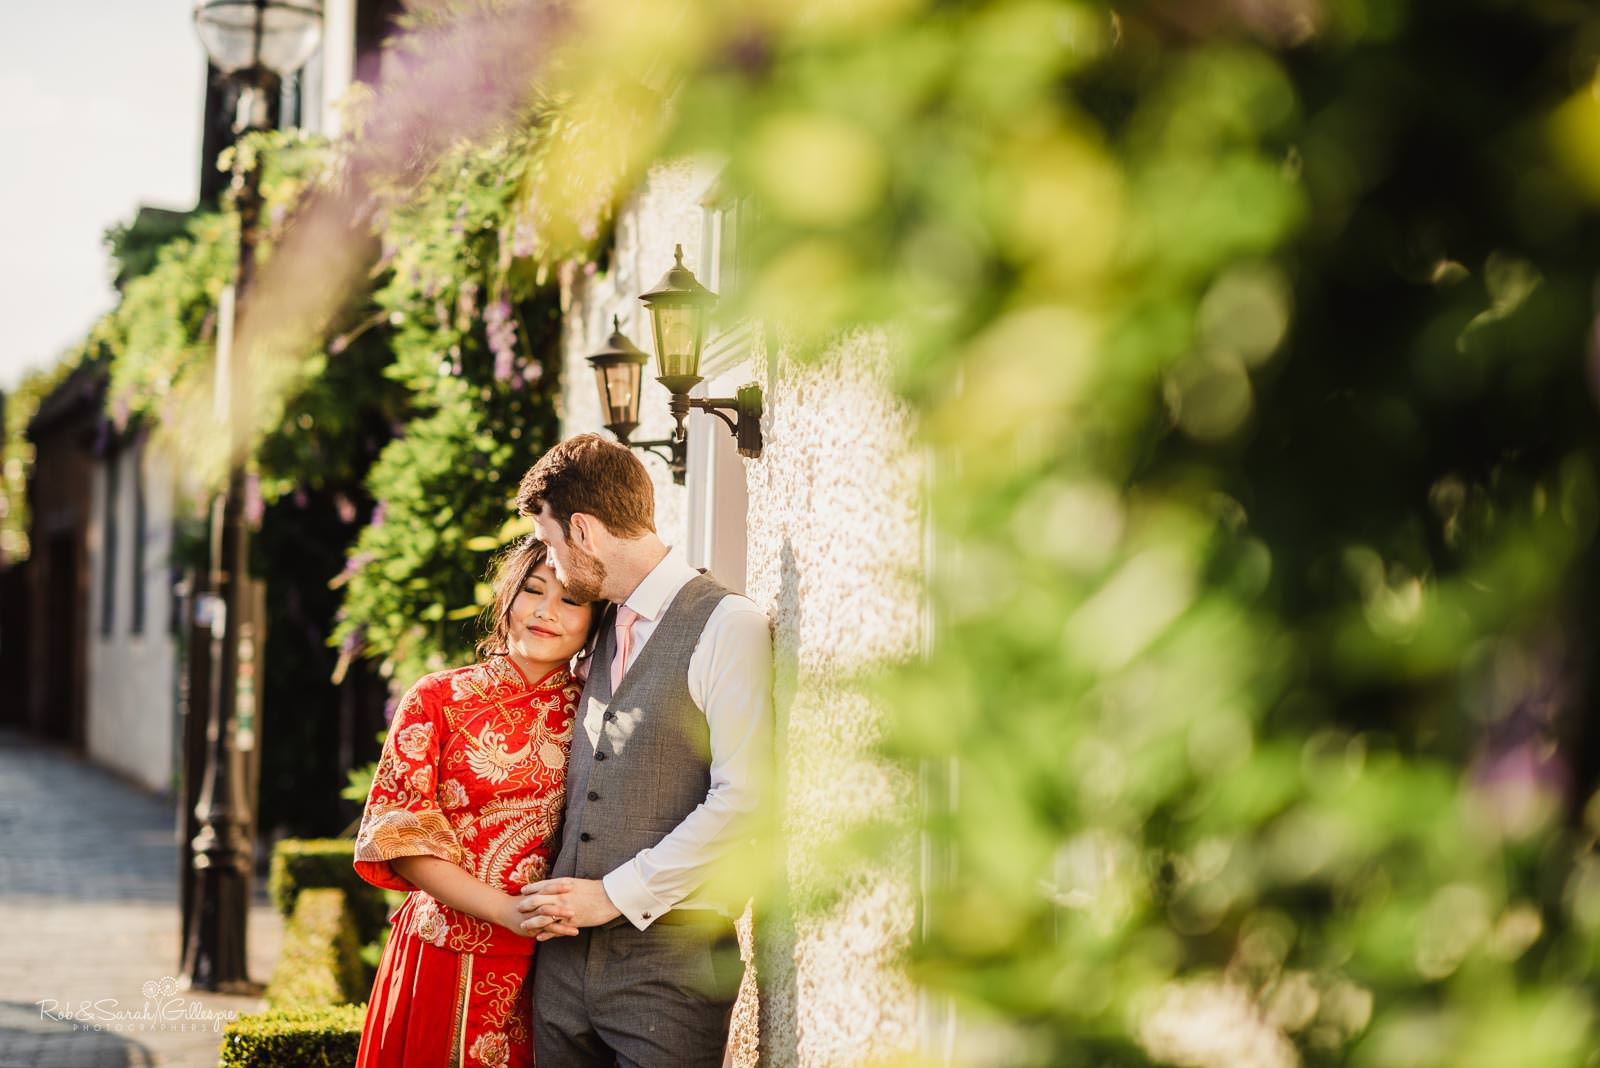 Natural and relaxed photography at Stratford upon Avon wedding